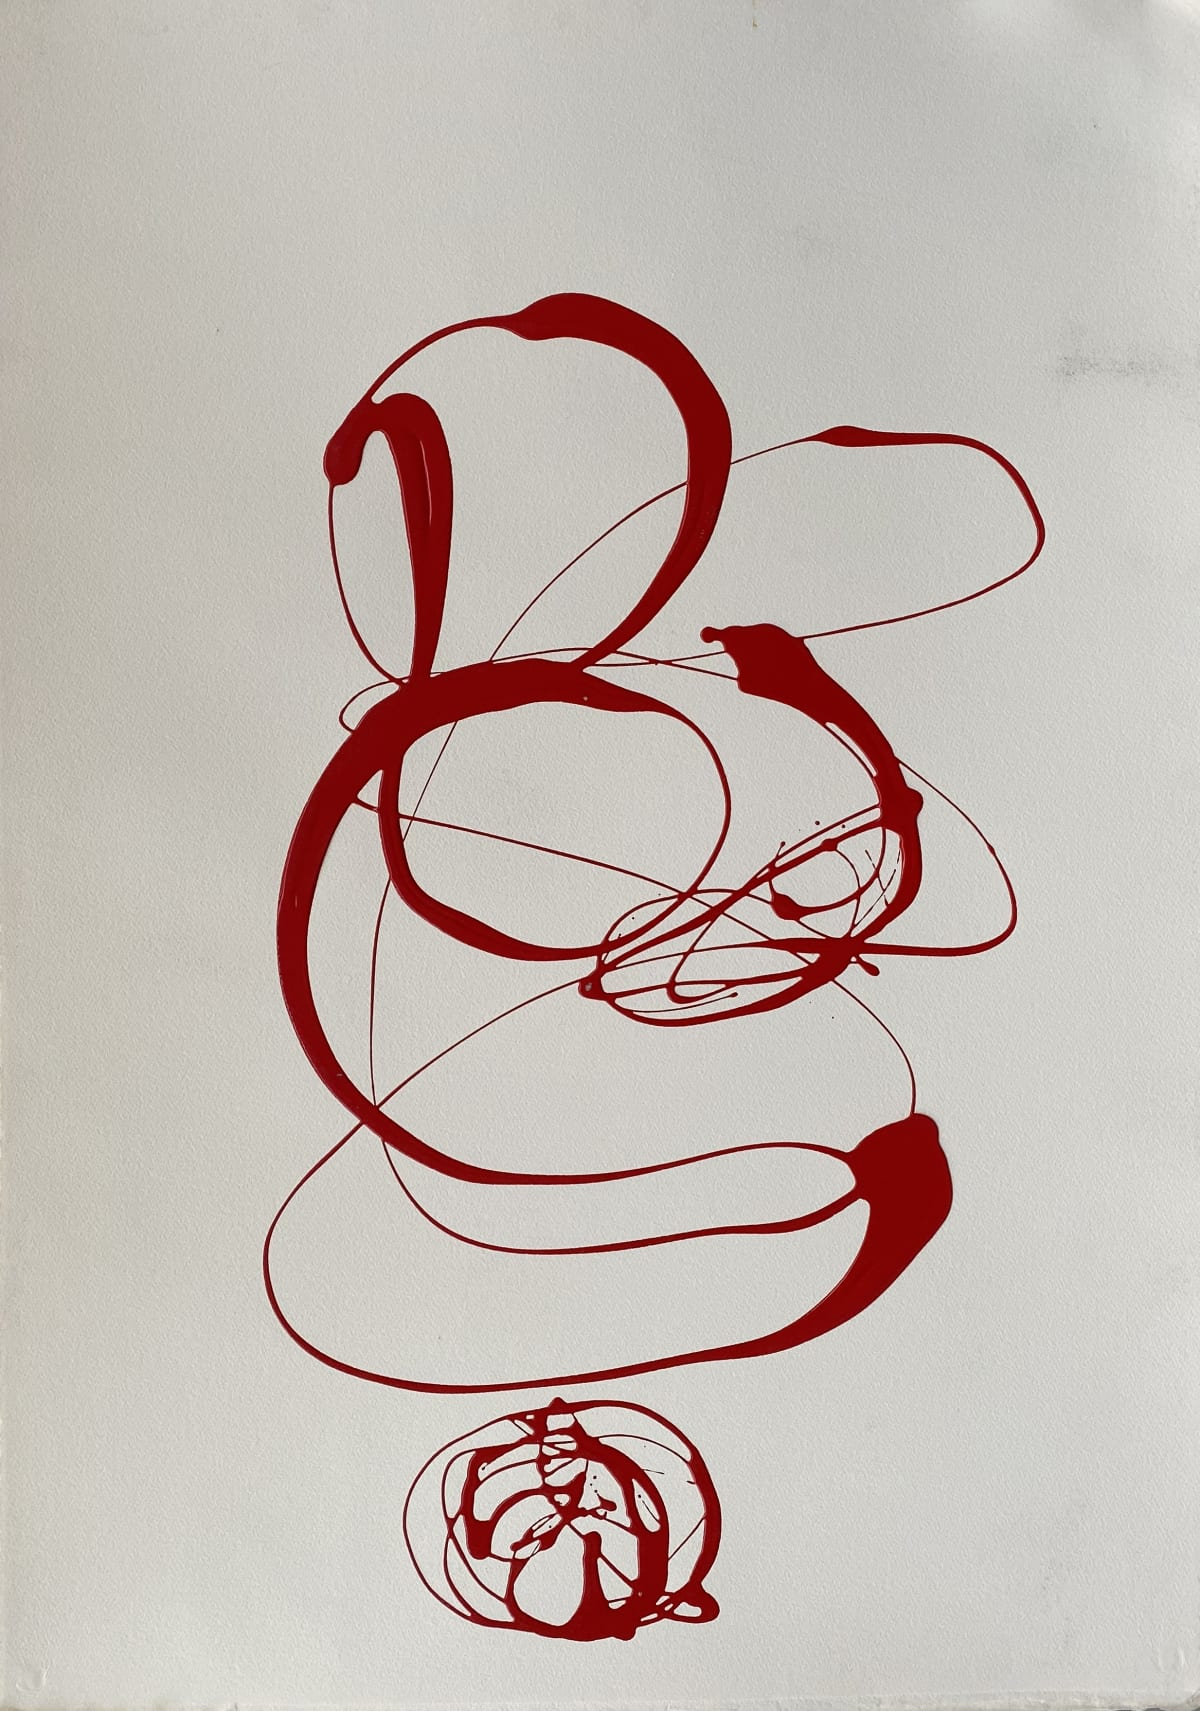 Terence Donovan Abstract 20 acrylic on paper 77 x 110cm